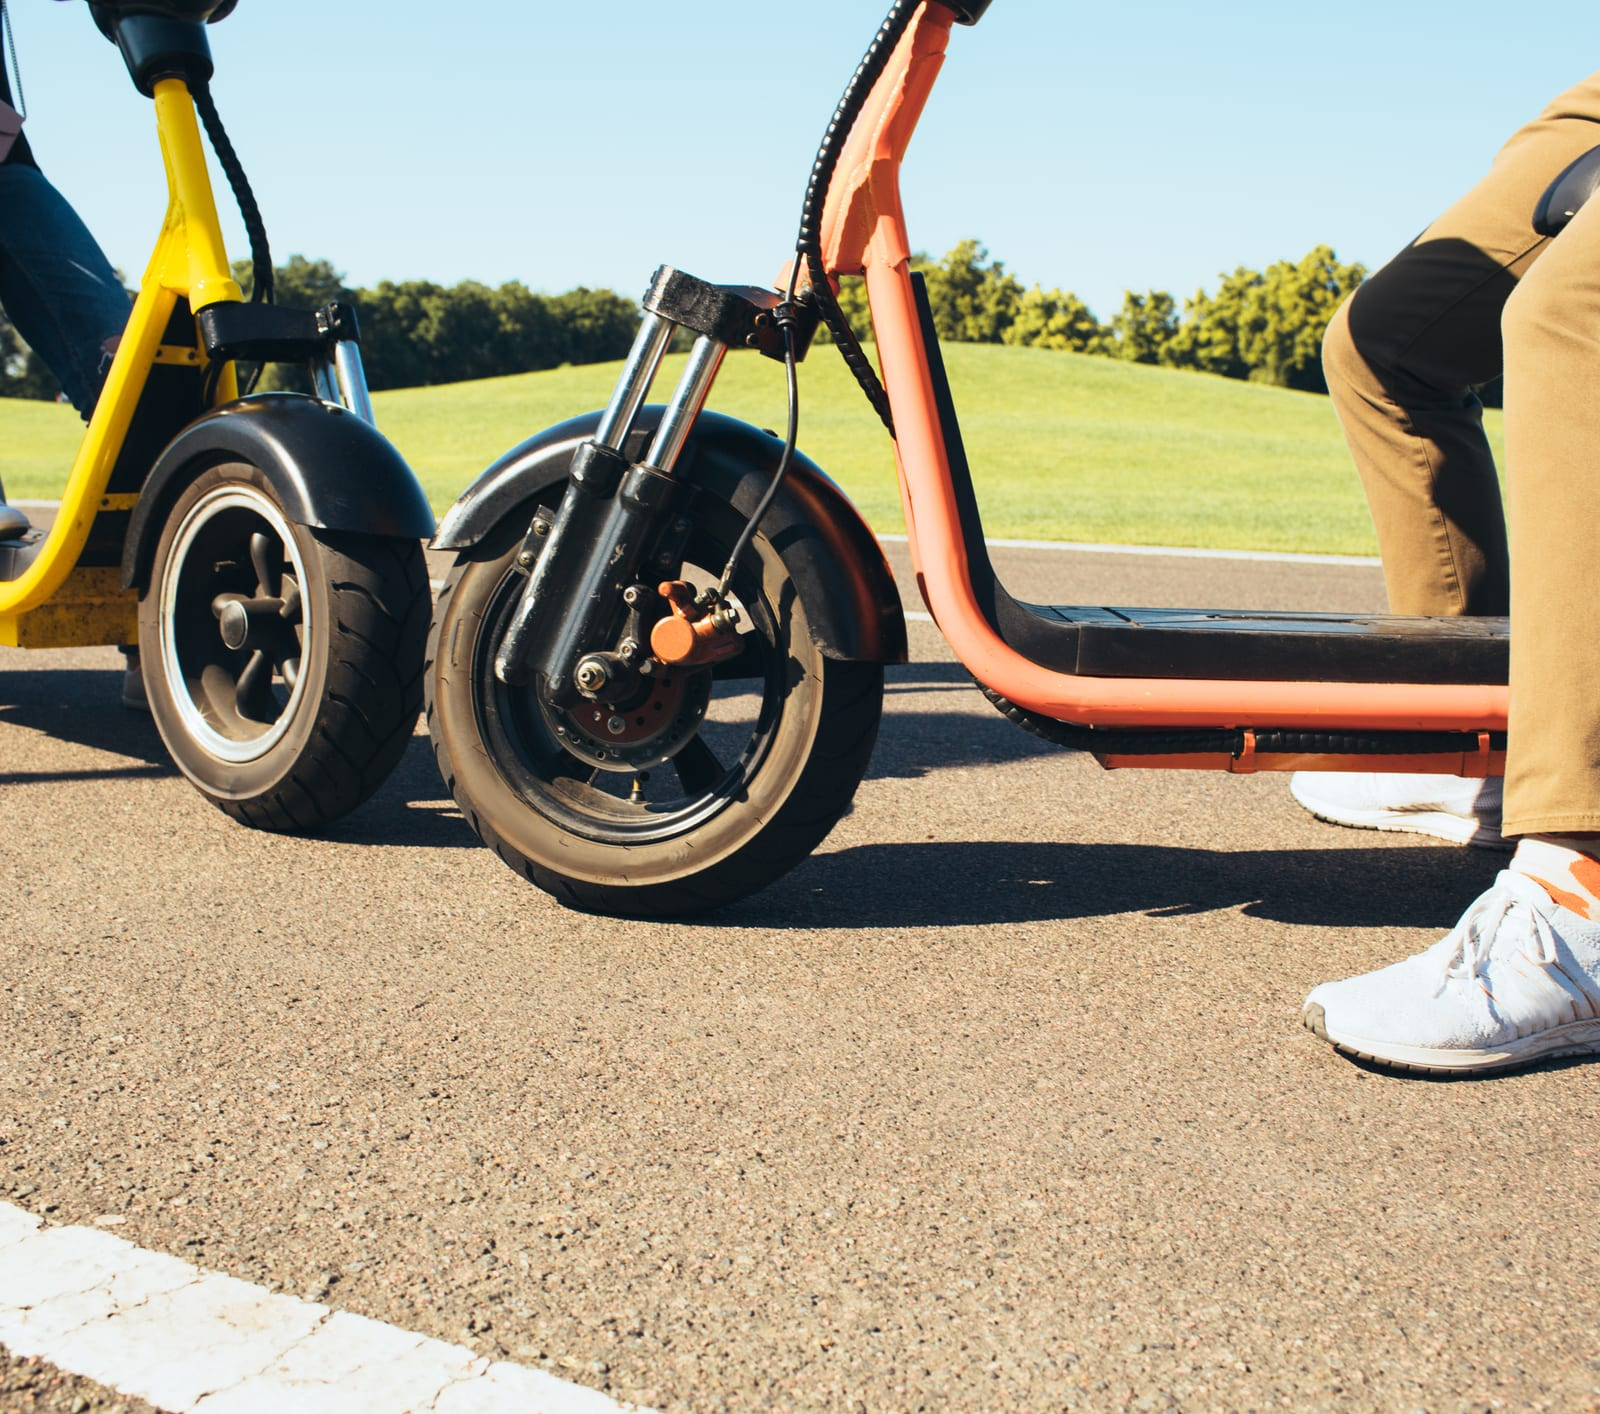 South Carolina Moped and Scooter Laws - ValuePenguin